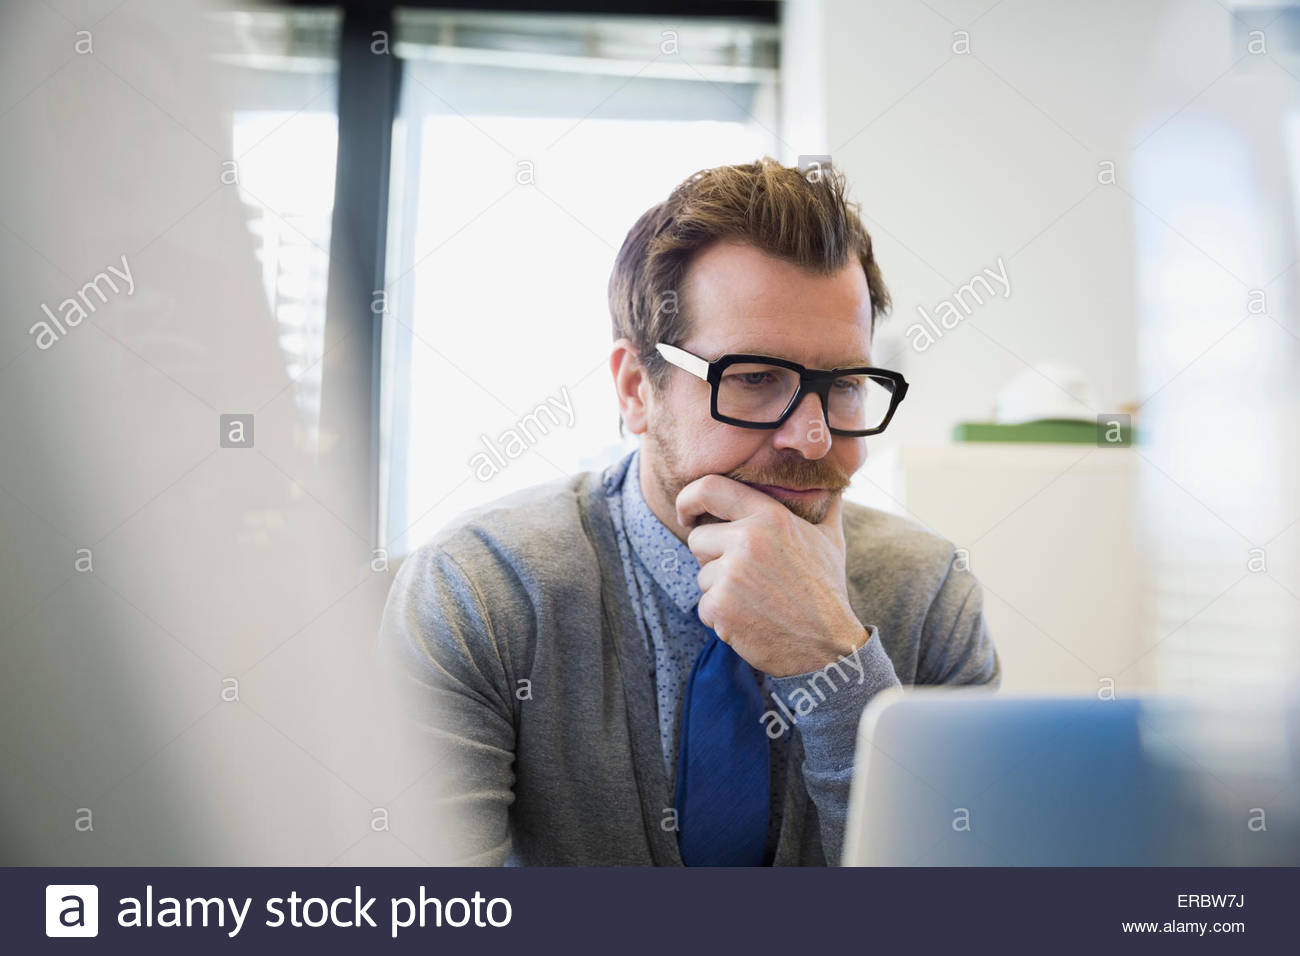 Focused businessman working at laptop hand on chin - Stock Image